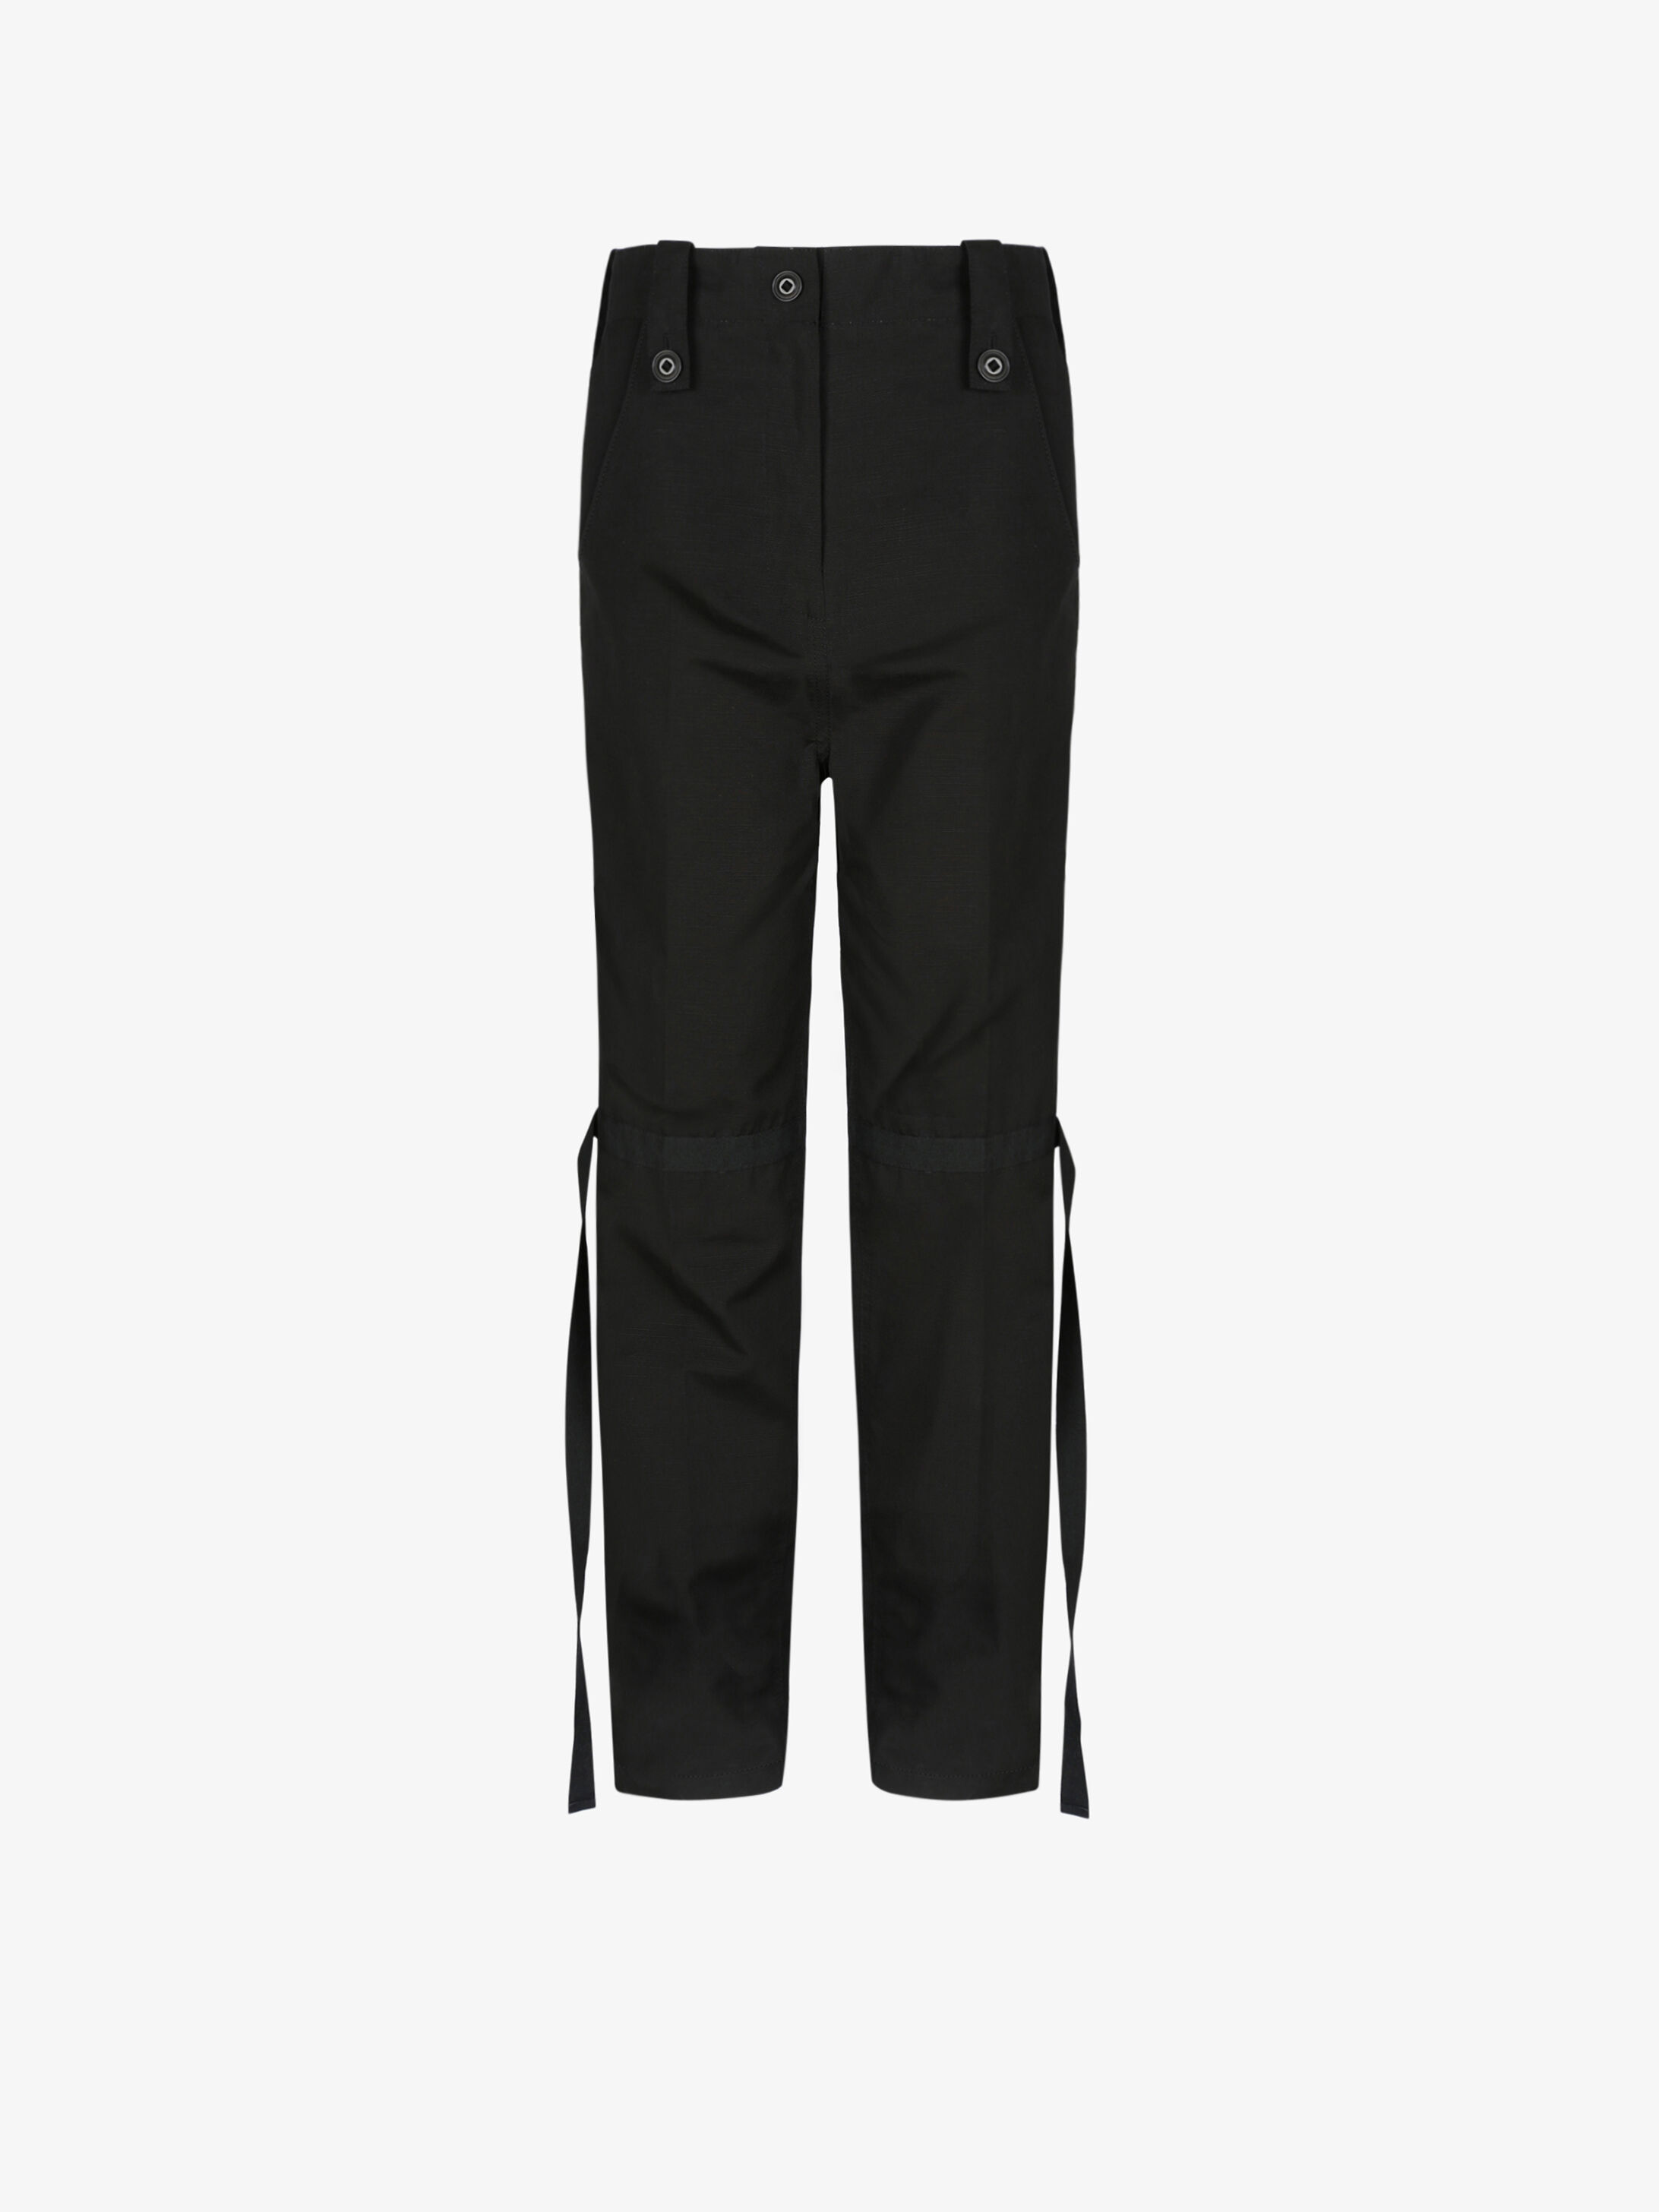 80840ea4c93d Women s Pants and Shorts collection by Givenchy.